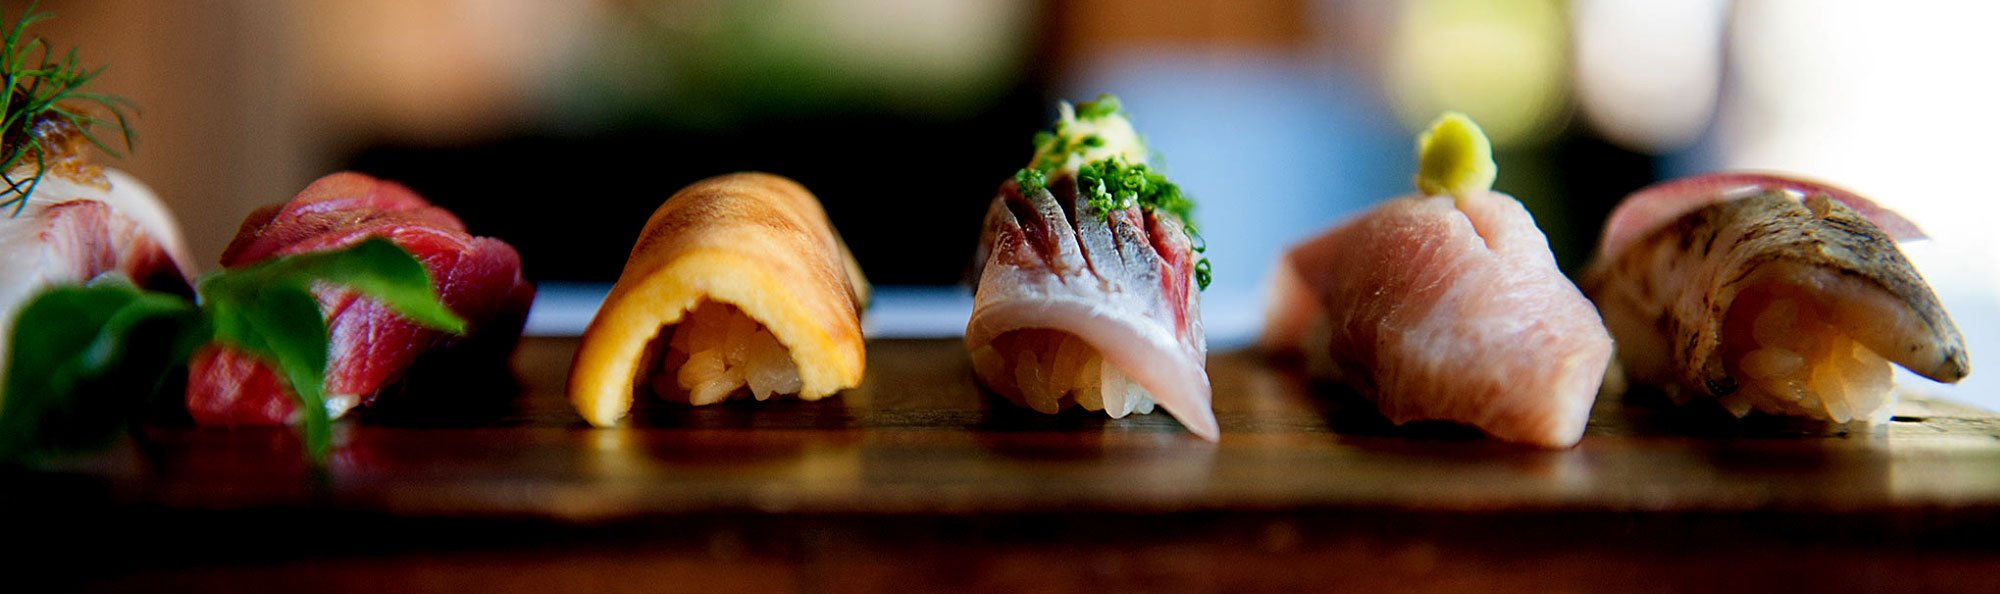 5 Best Sushi All You Can Eat Restaurants in Japan